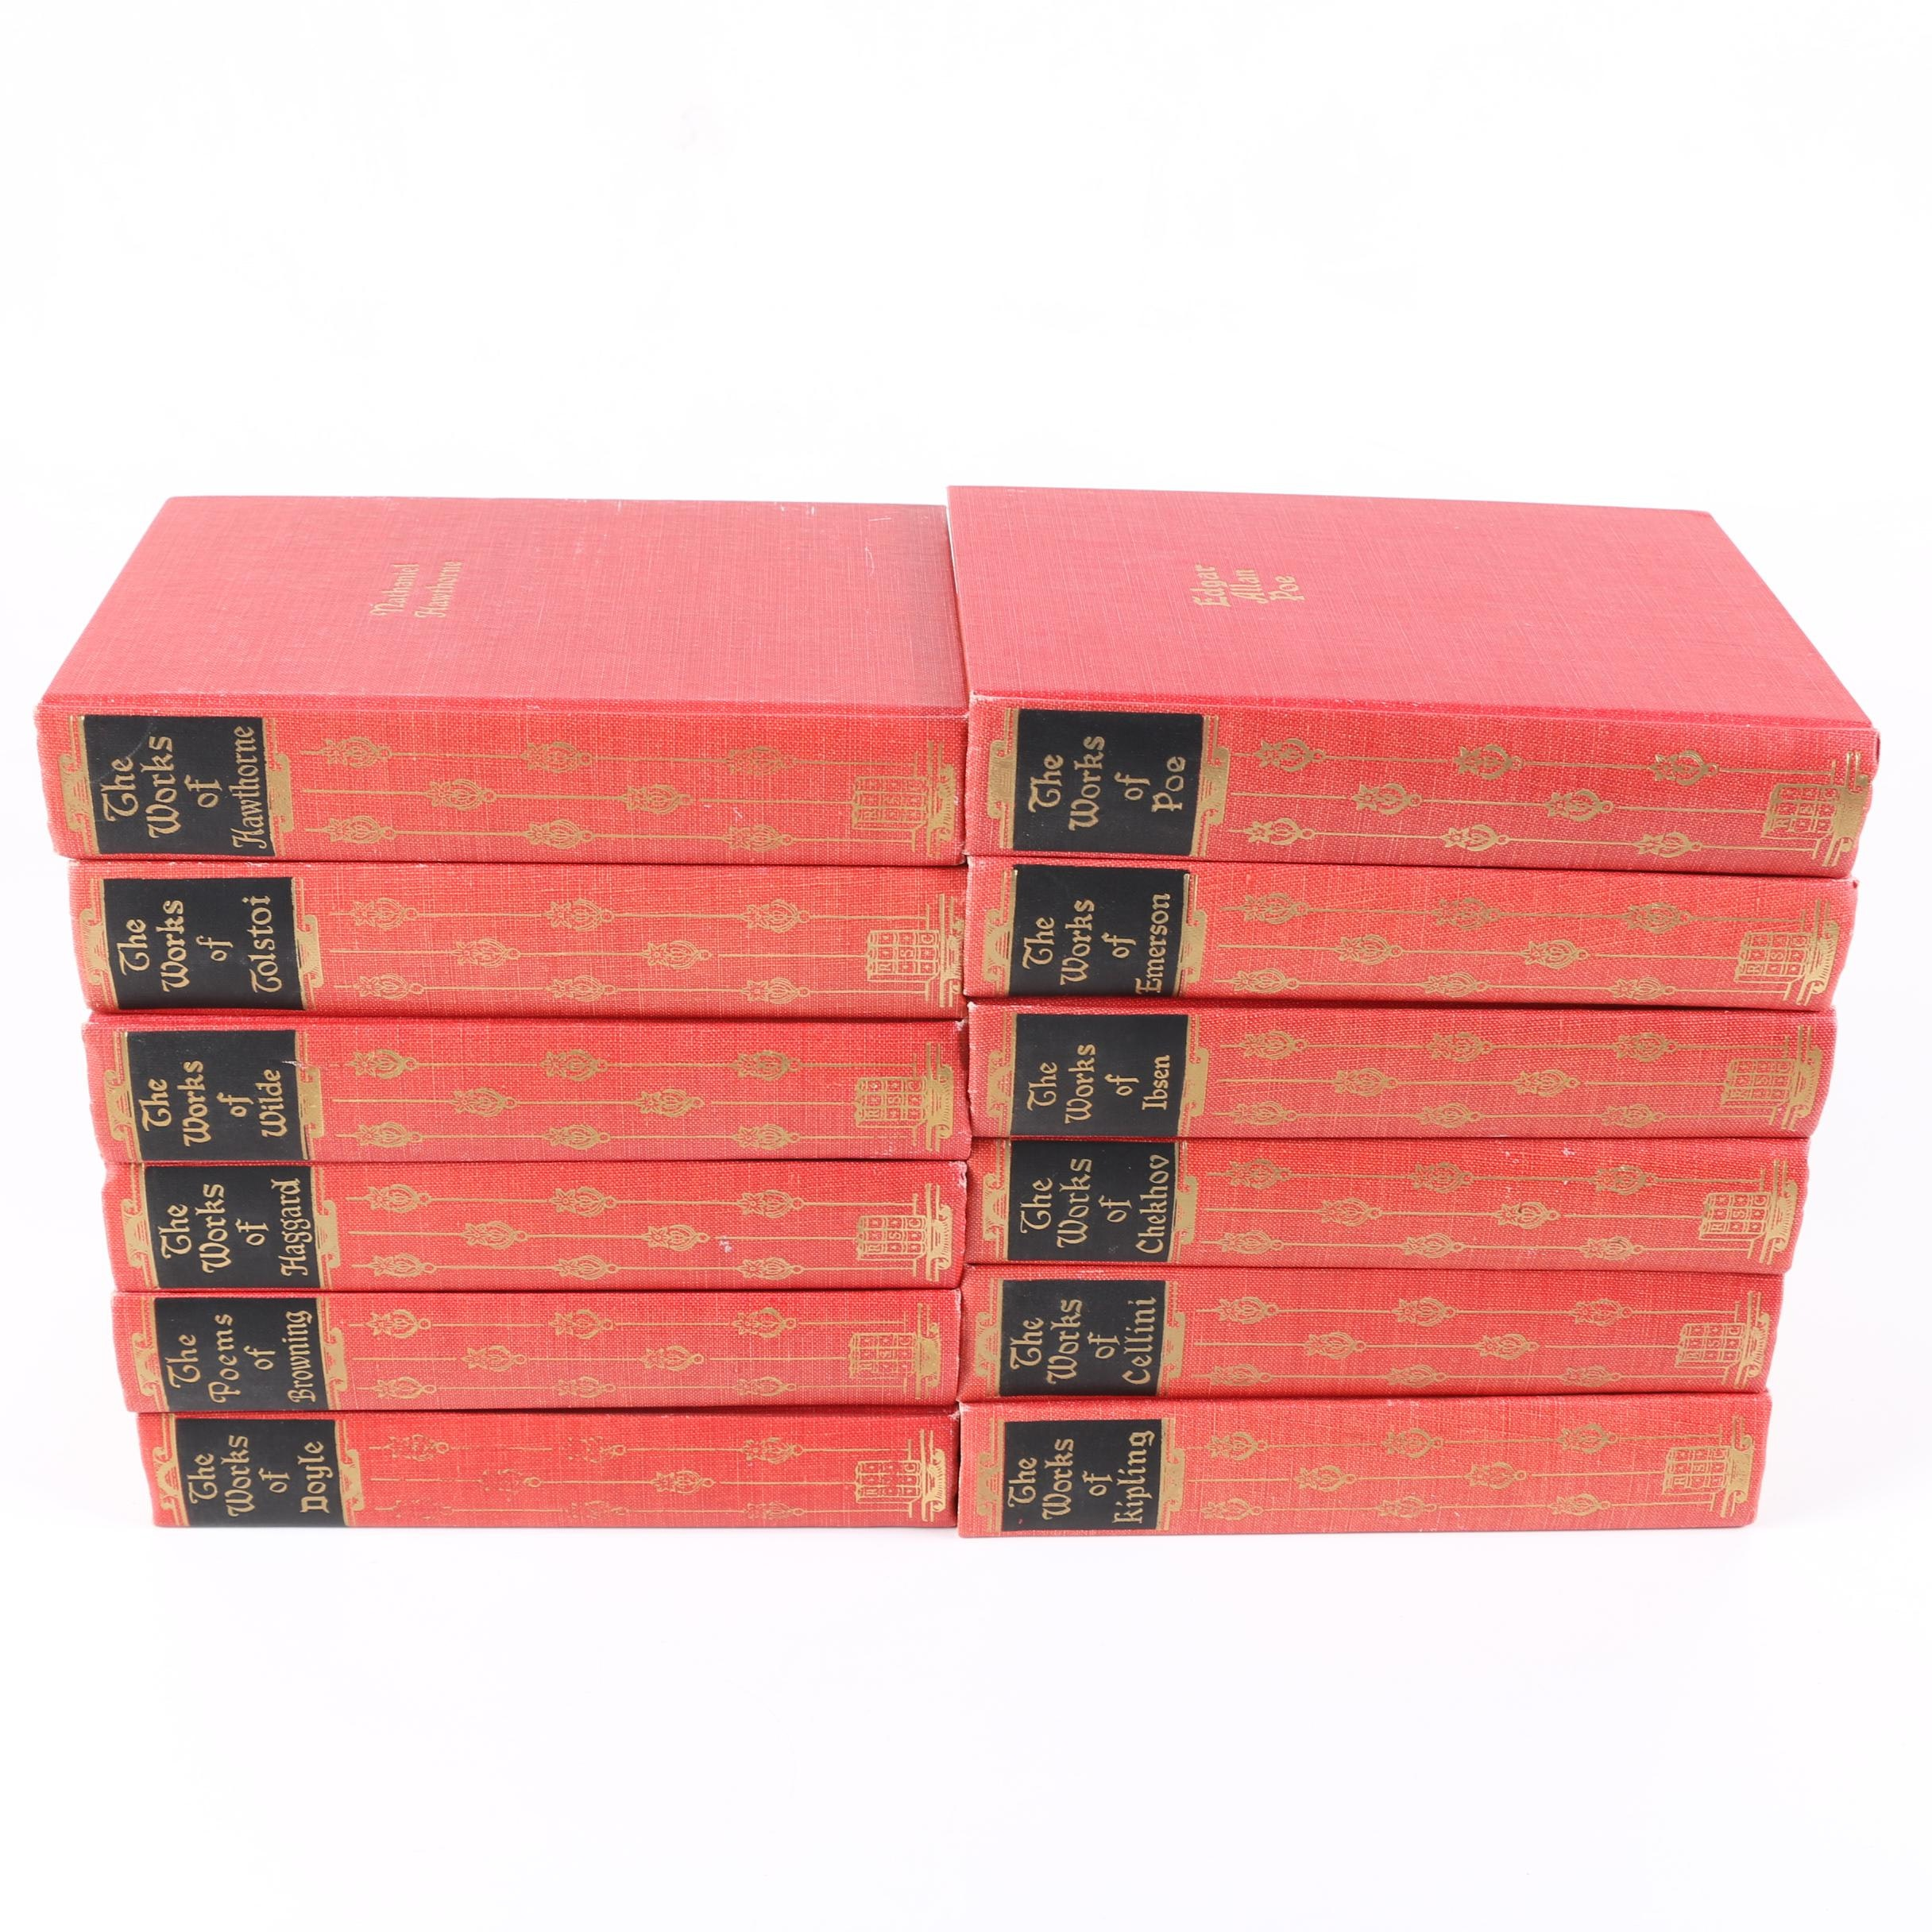 "Black's Readers Service Company ""The Works of"" Book Set"